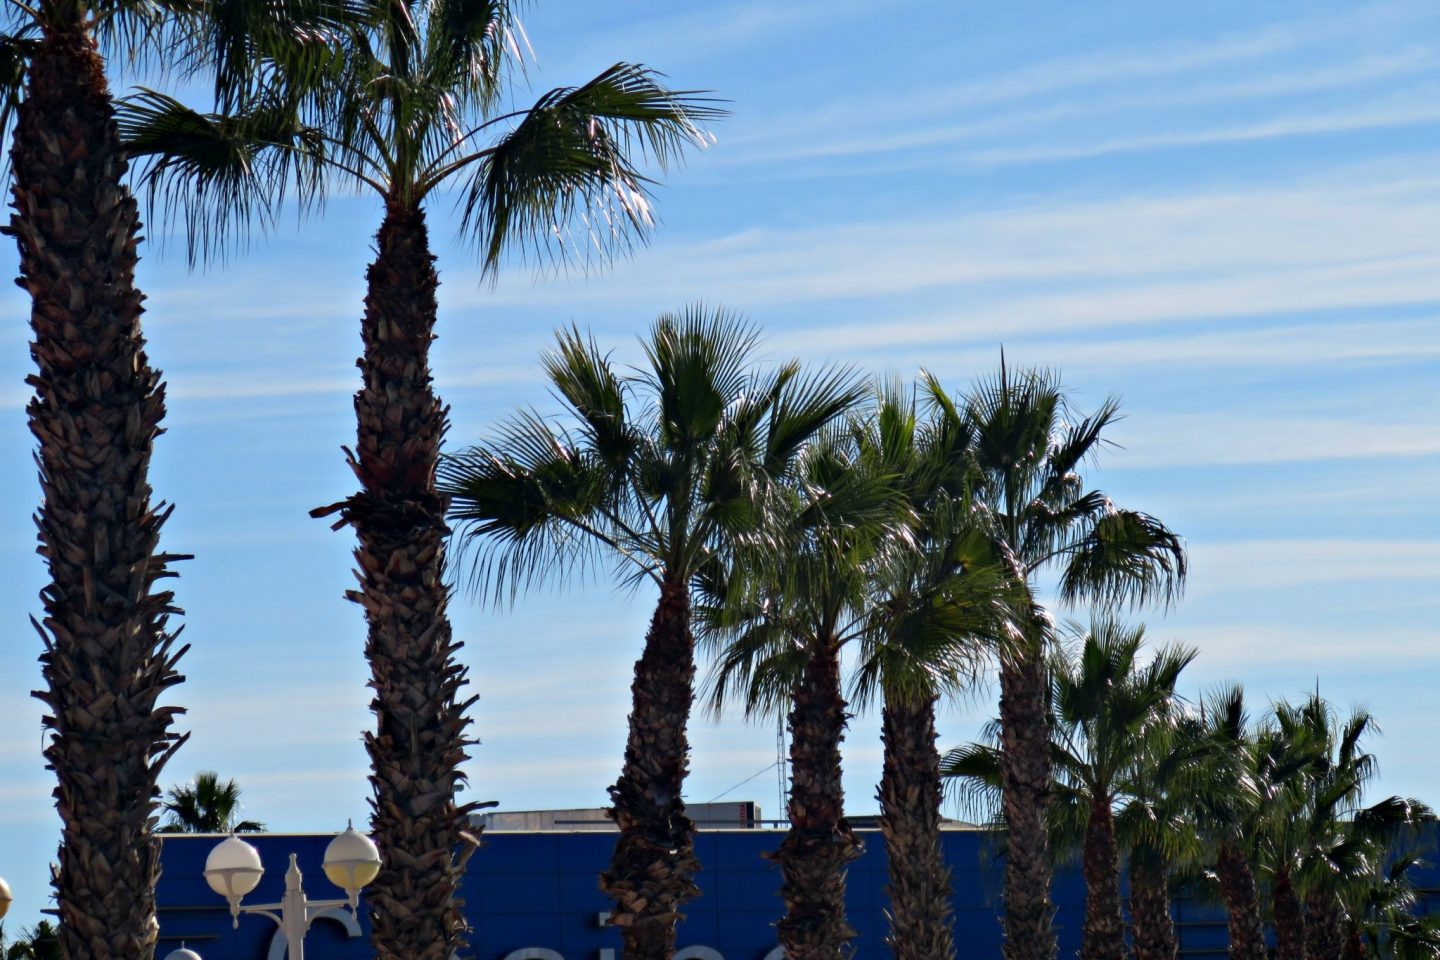 spain palm trees